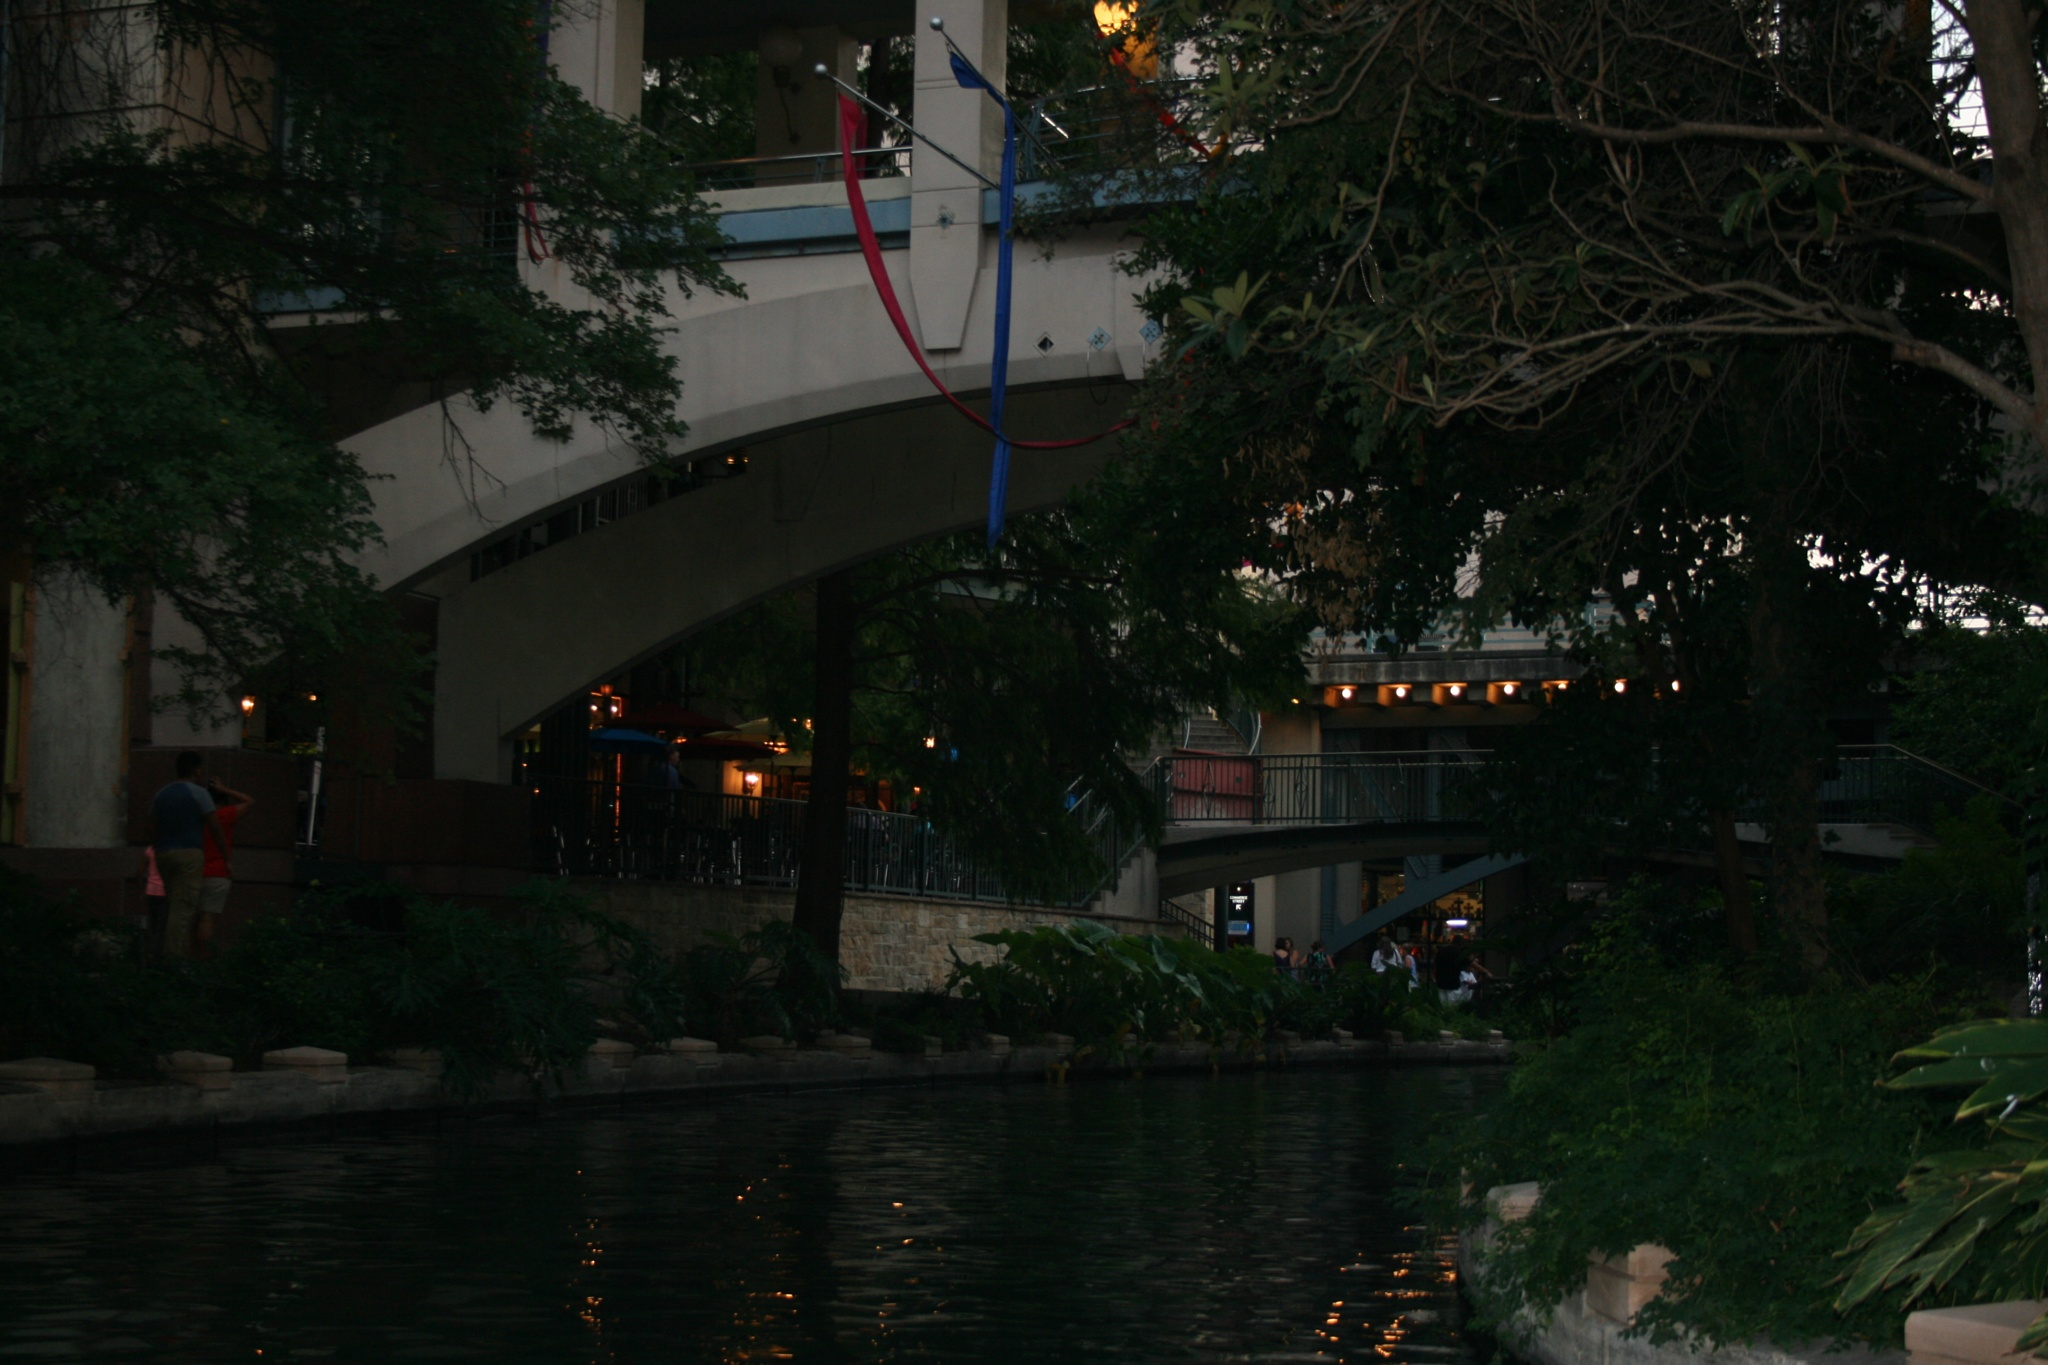 Evening Descends on the Riverwalk by Gayle Goedhart